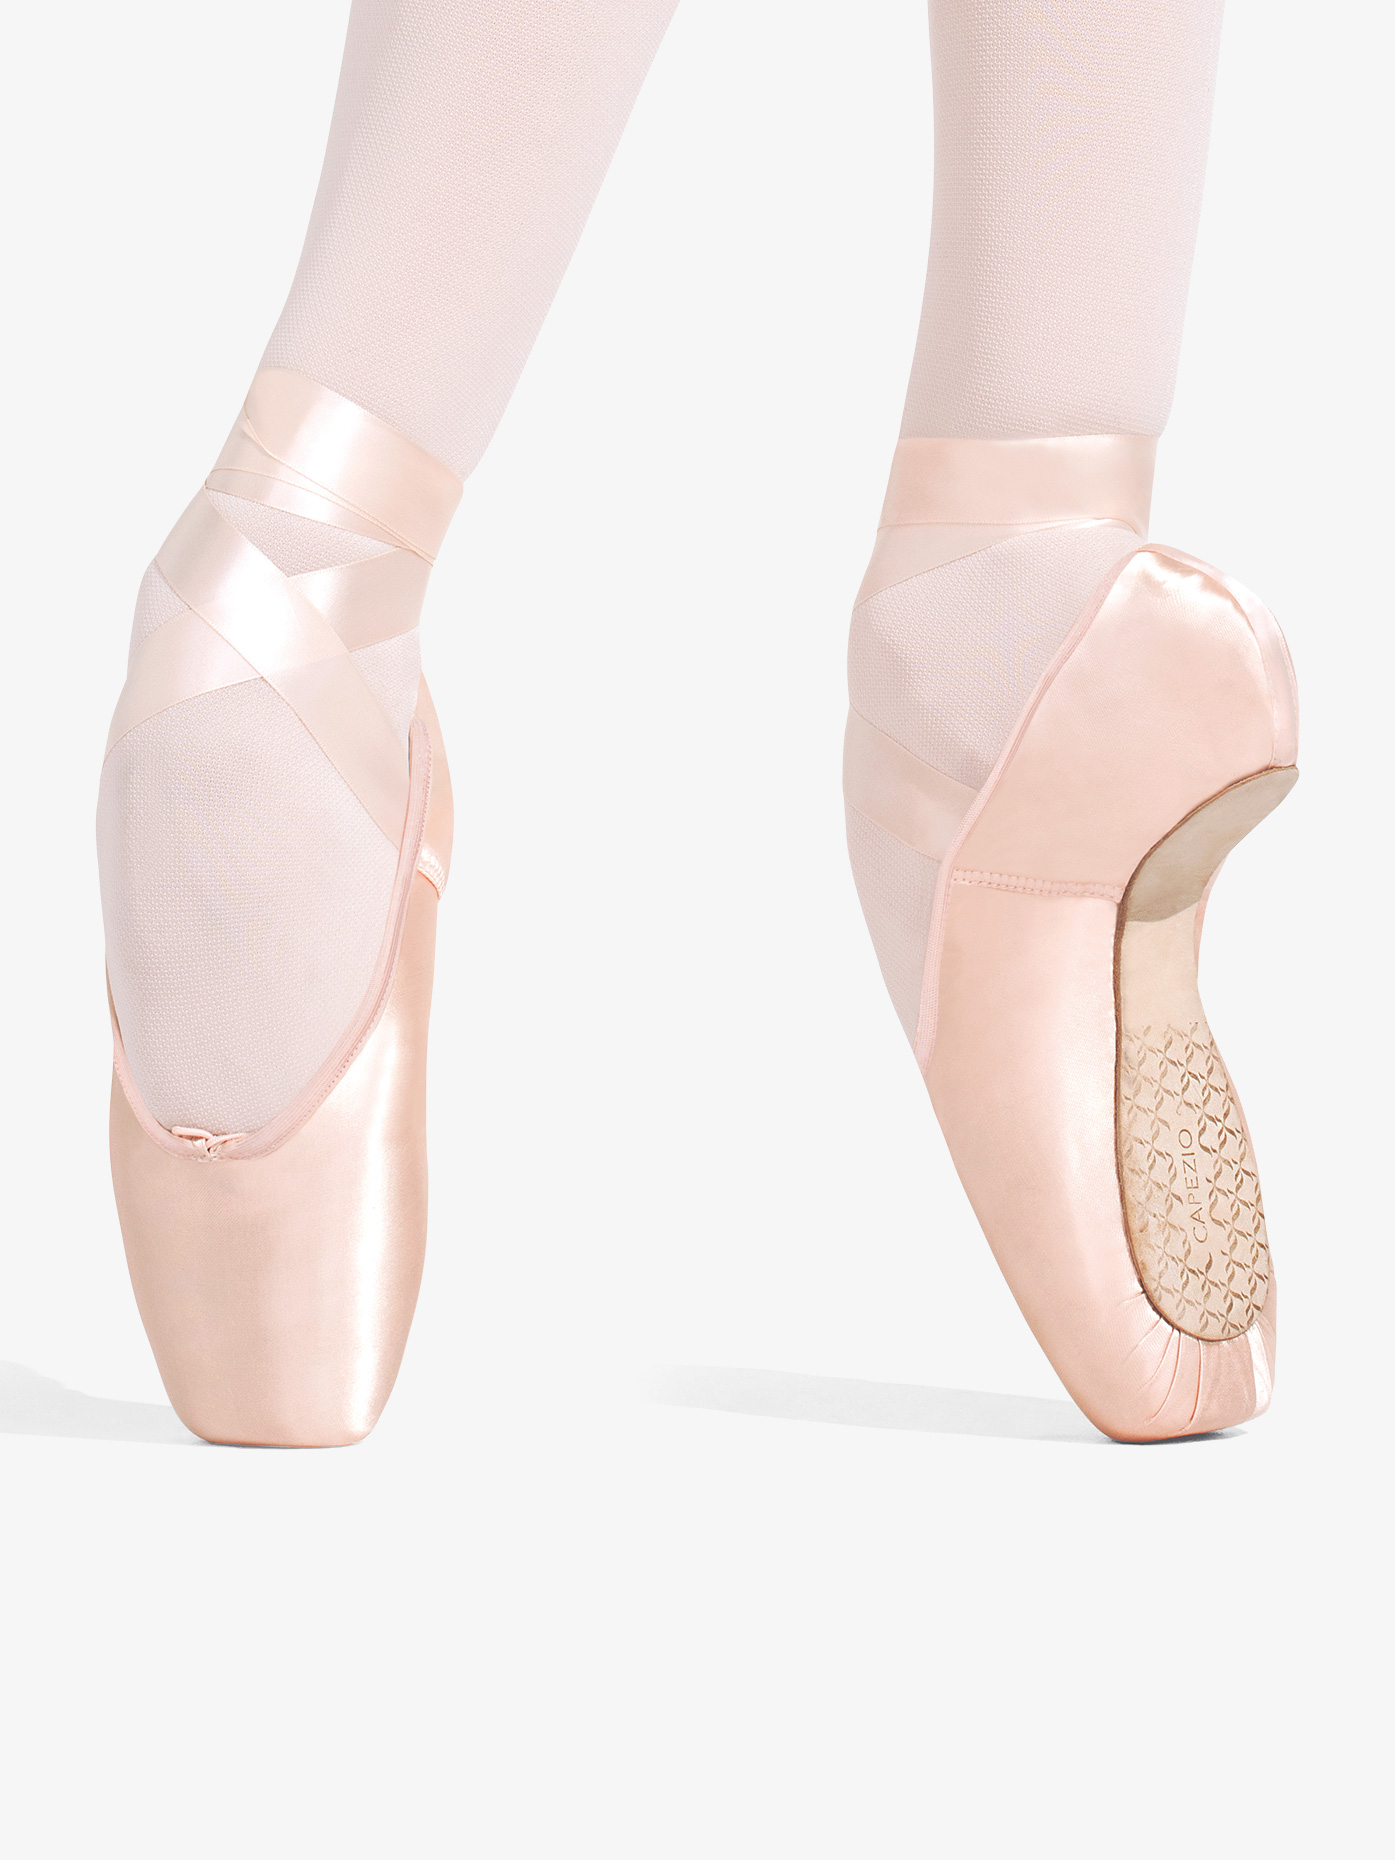 Capezio Womens Developpe #3 Shank Pointe Shoes 1136W